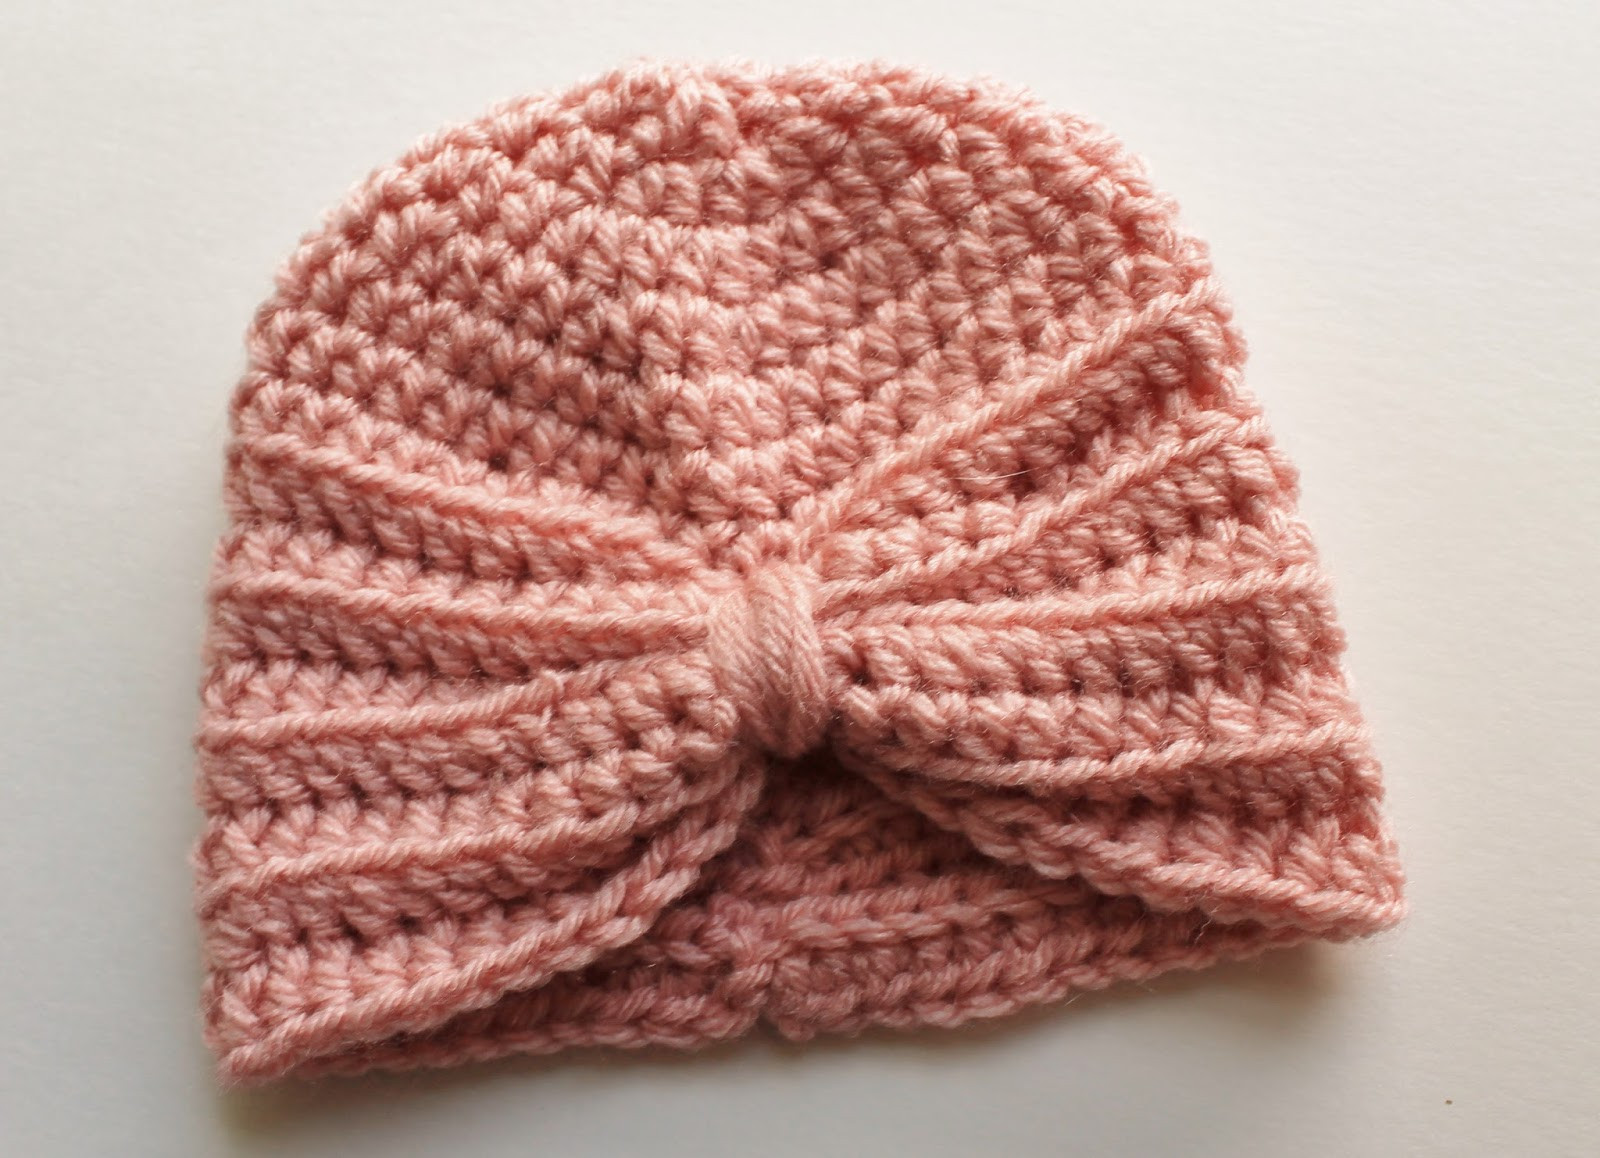 kozy & co Crochet Baby Turban Pattern